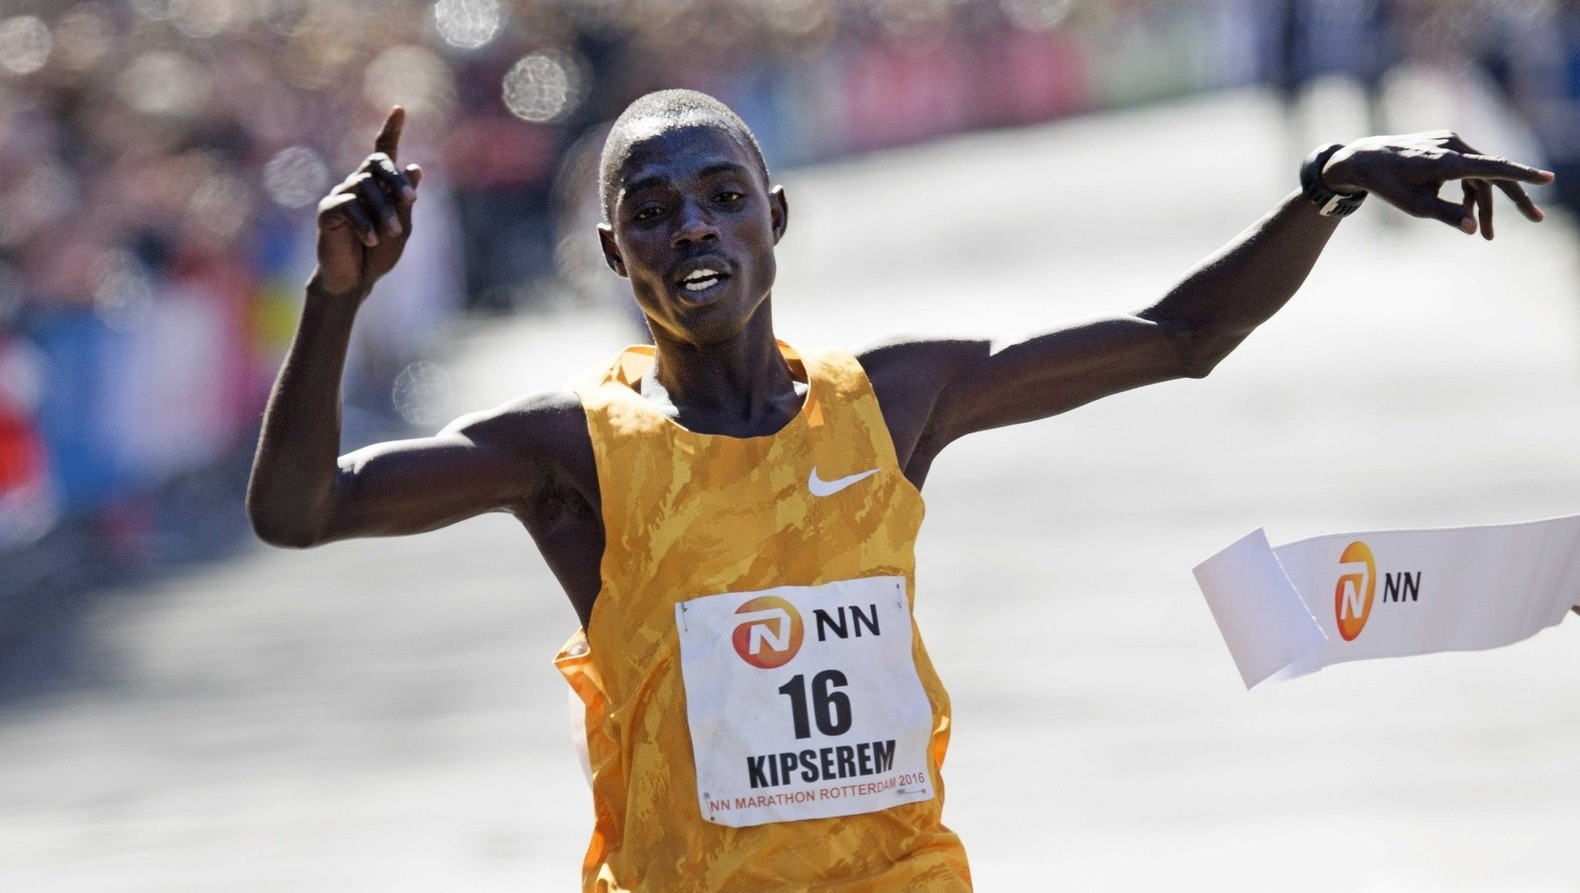 2018 Abu Dhabi Marathon champion Marius Kipserem from Kenya eyes podium at Rotterdam Marathon